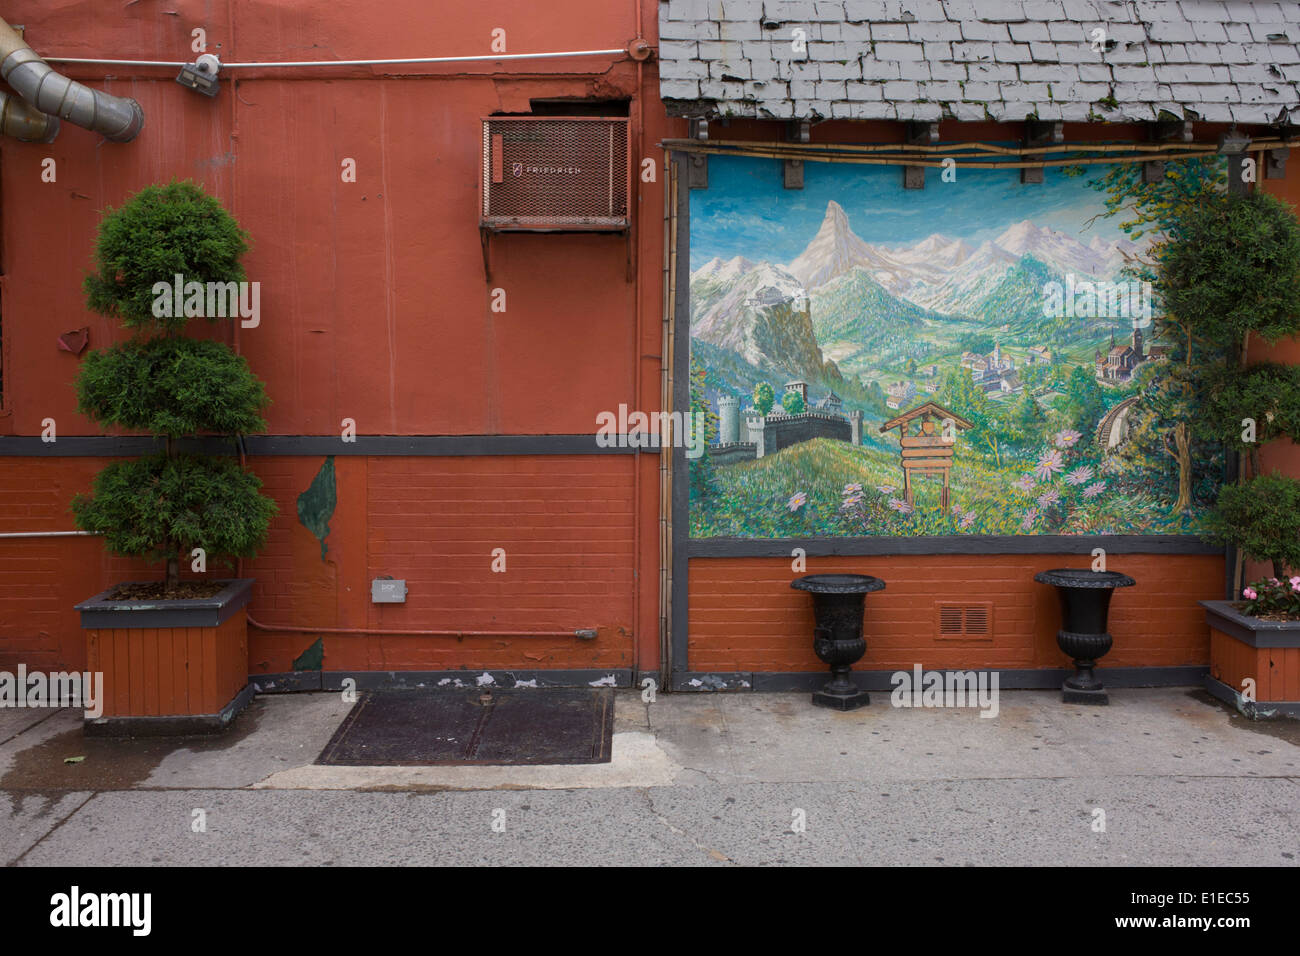 German fantasy landscape, painted on the side of a German bakery in New York City. - Stock Image